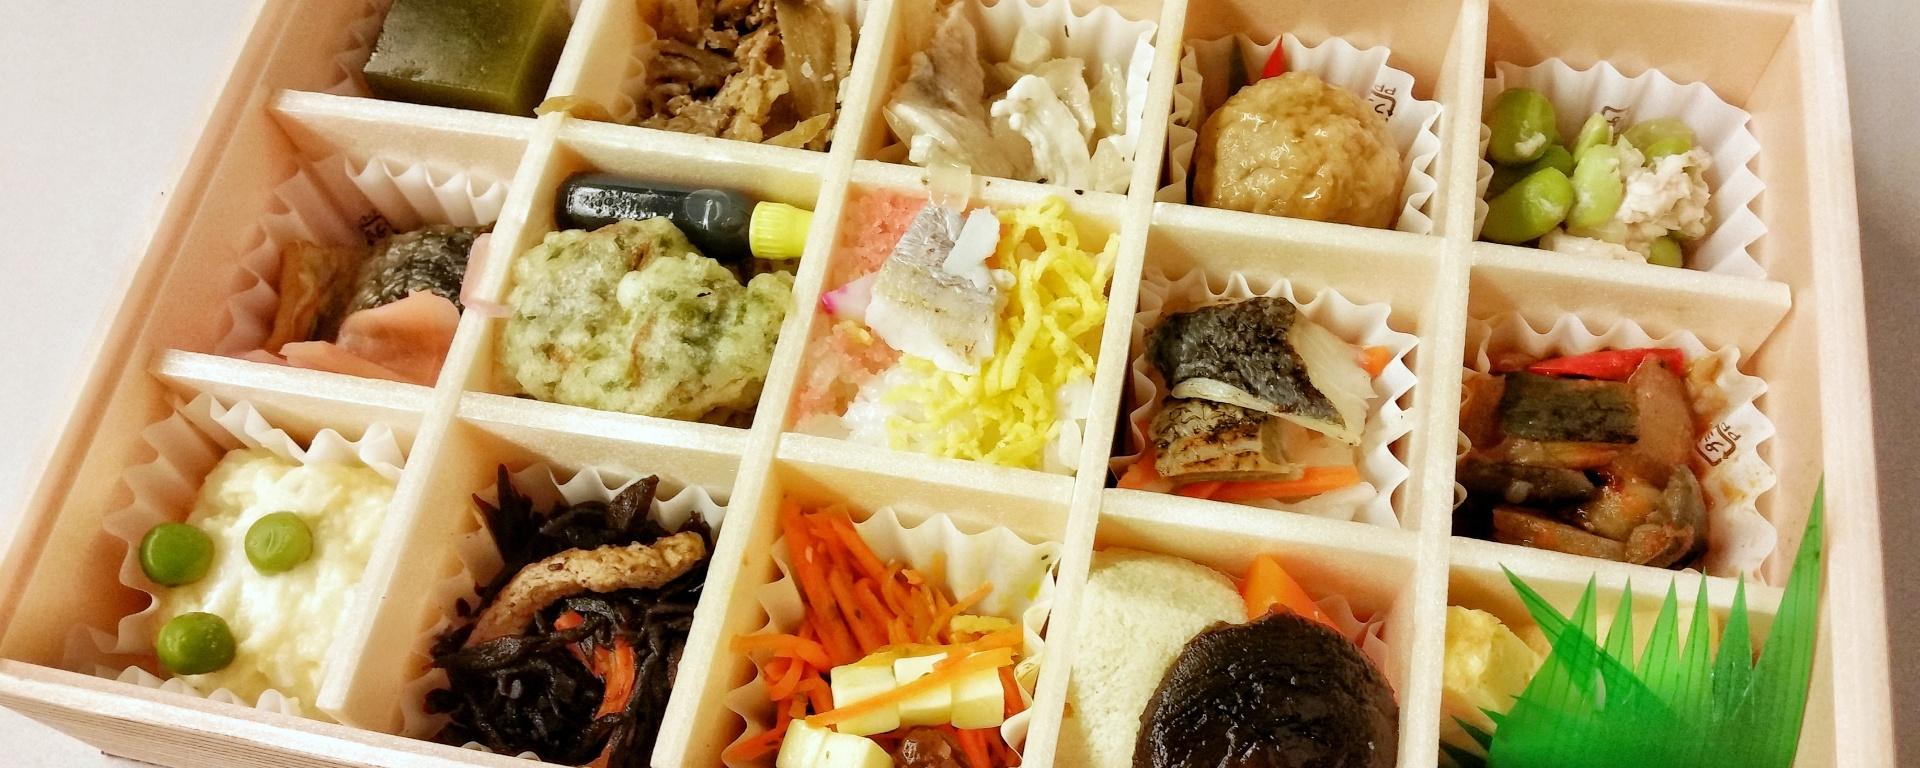 japanese food train station bento ekiben